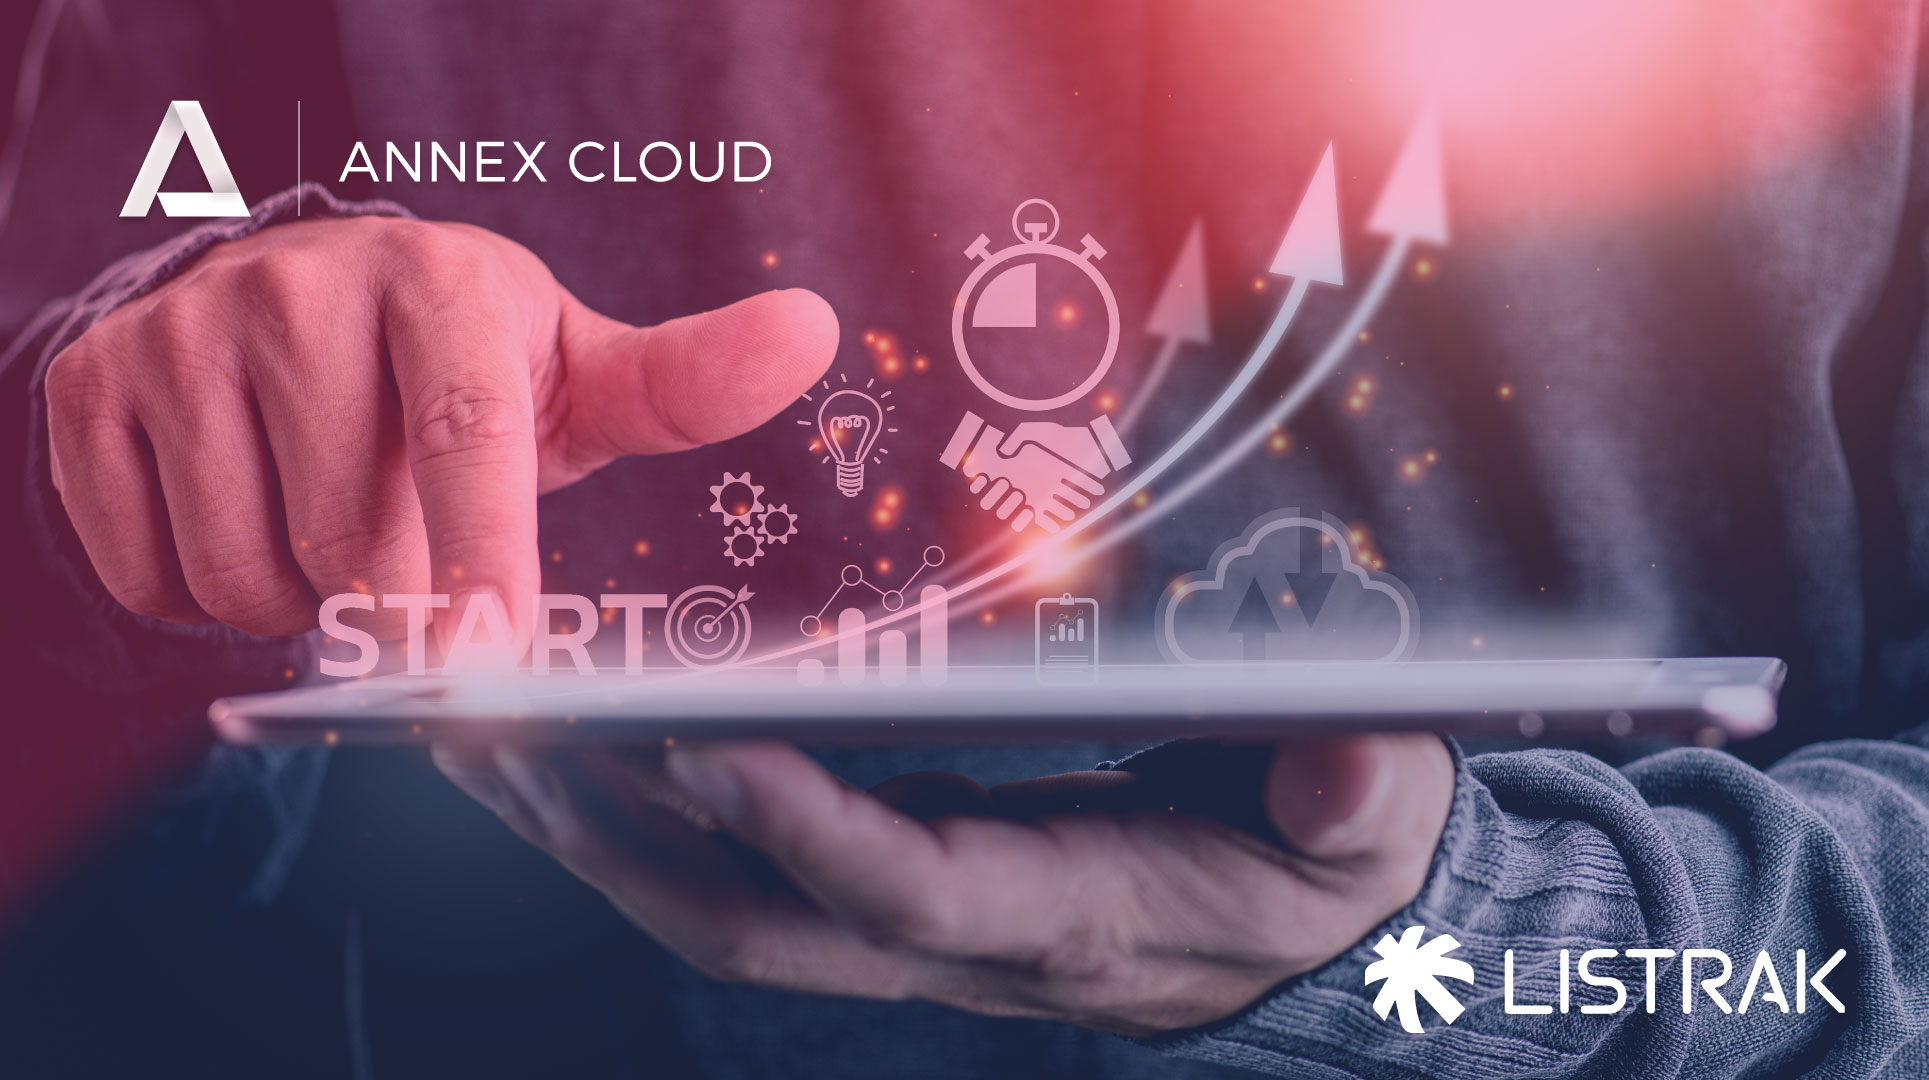 Leading customer loyalty & experience solutions firm Annex Cloud has partnered with Listrak